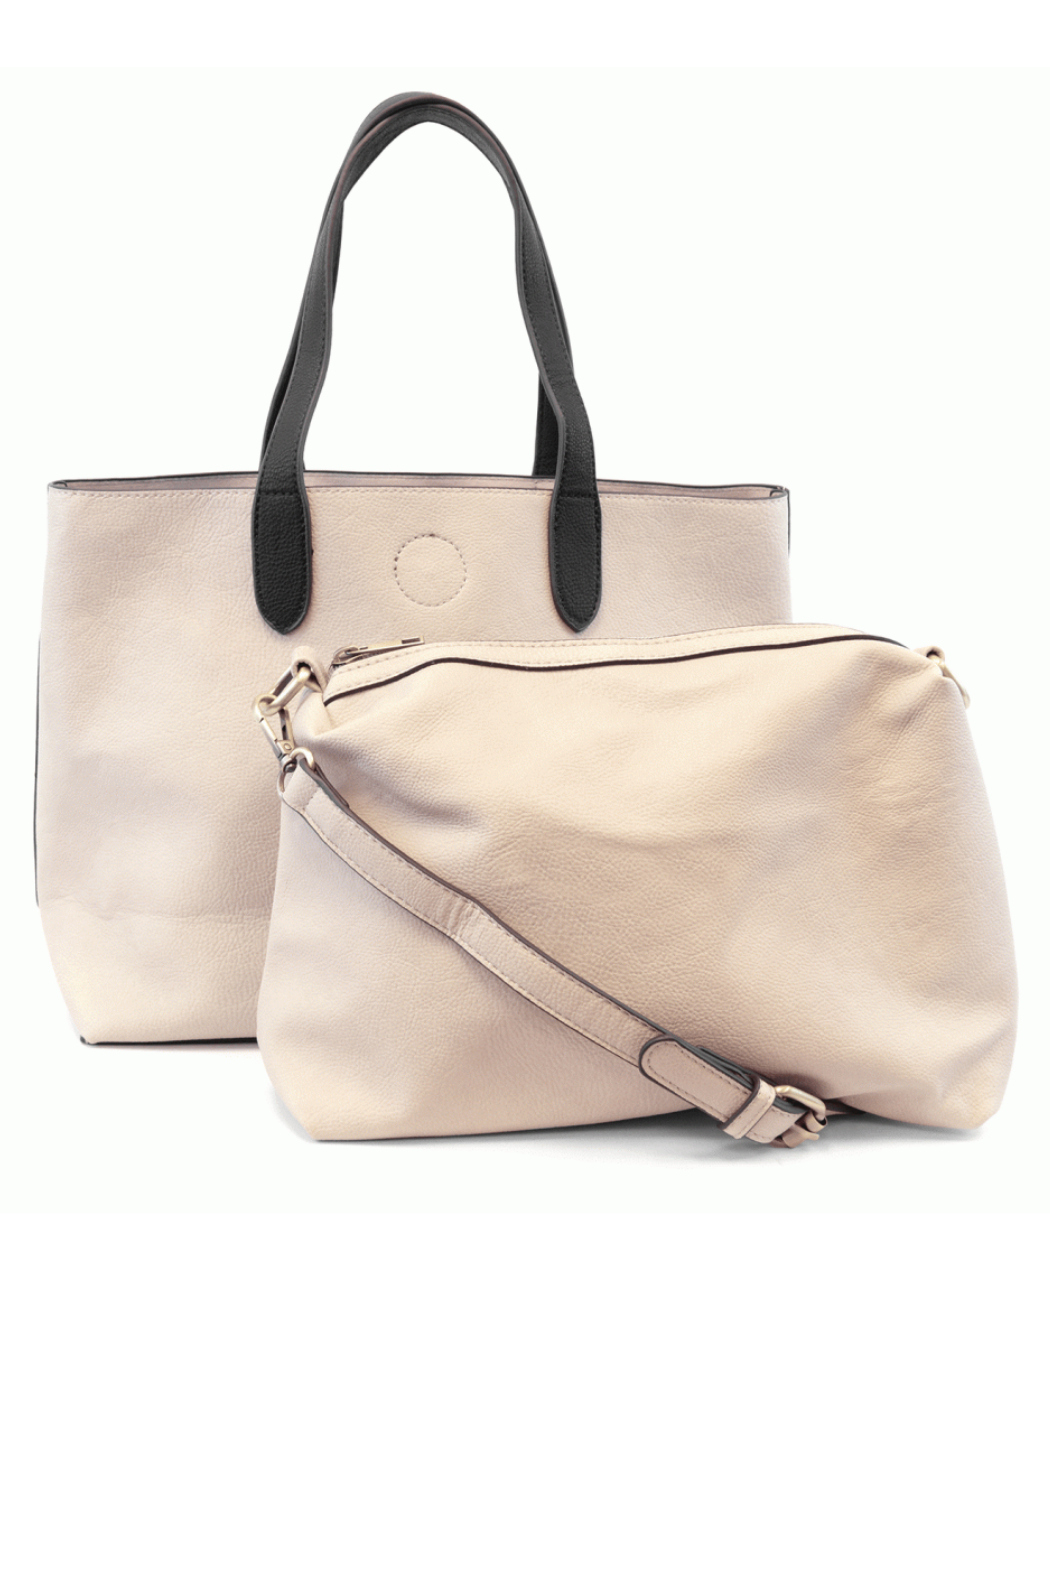 Joy Susan New Mariah Medium Convertible Tote - Front Full Image